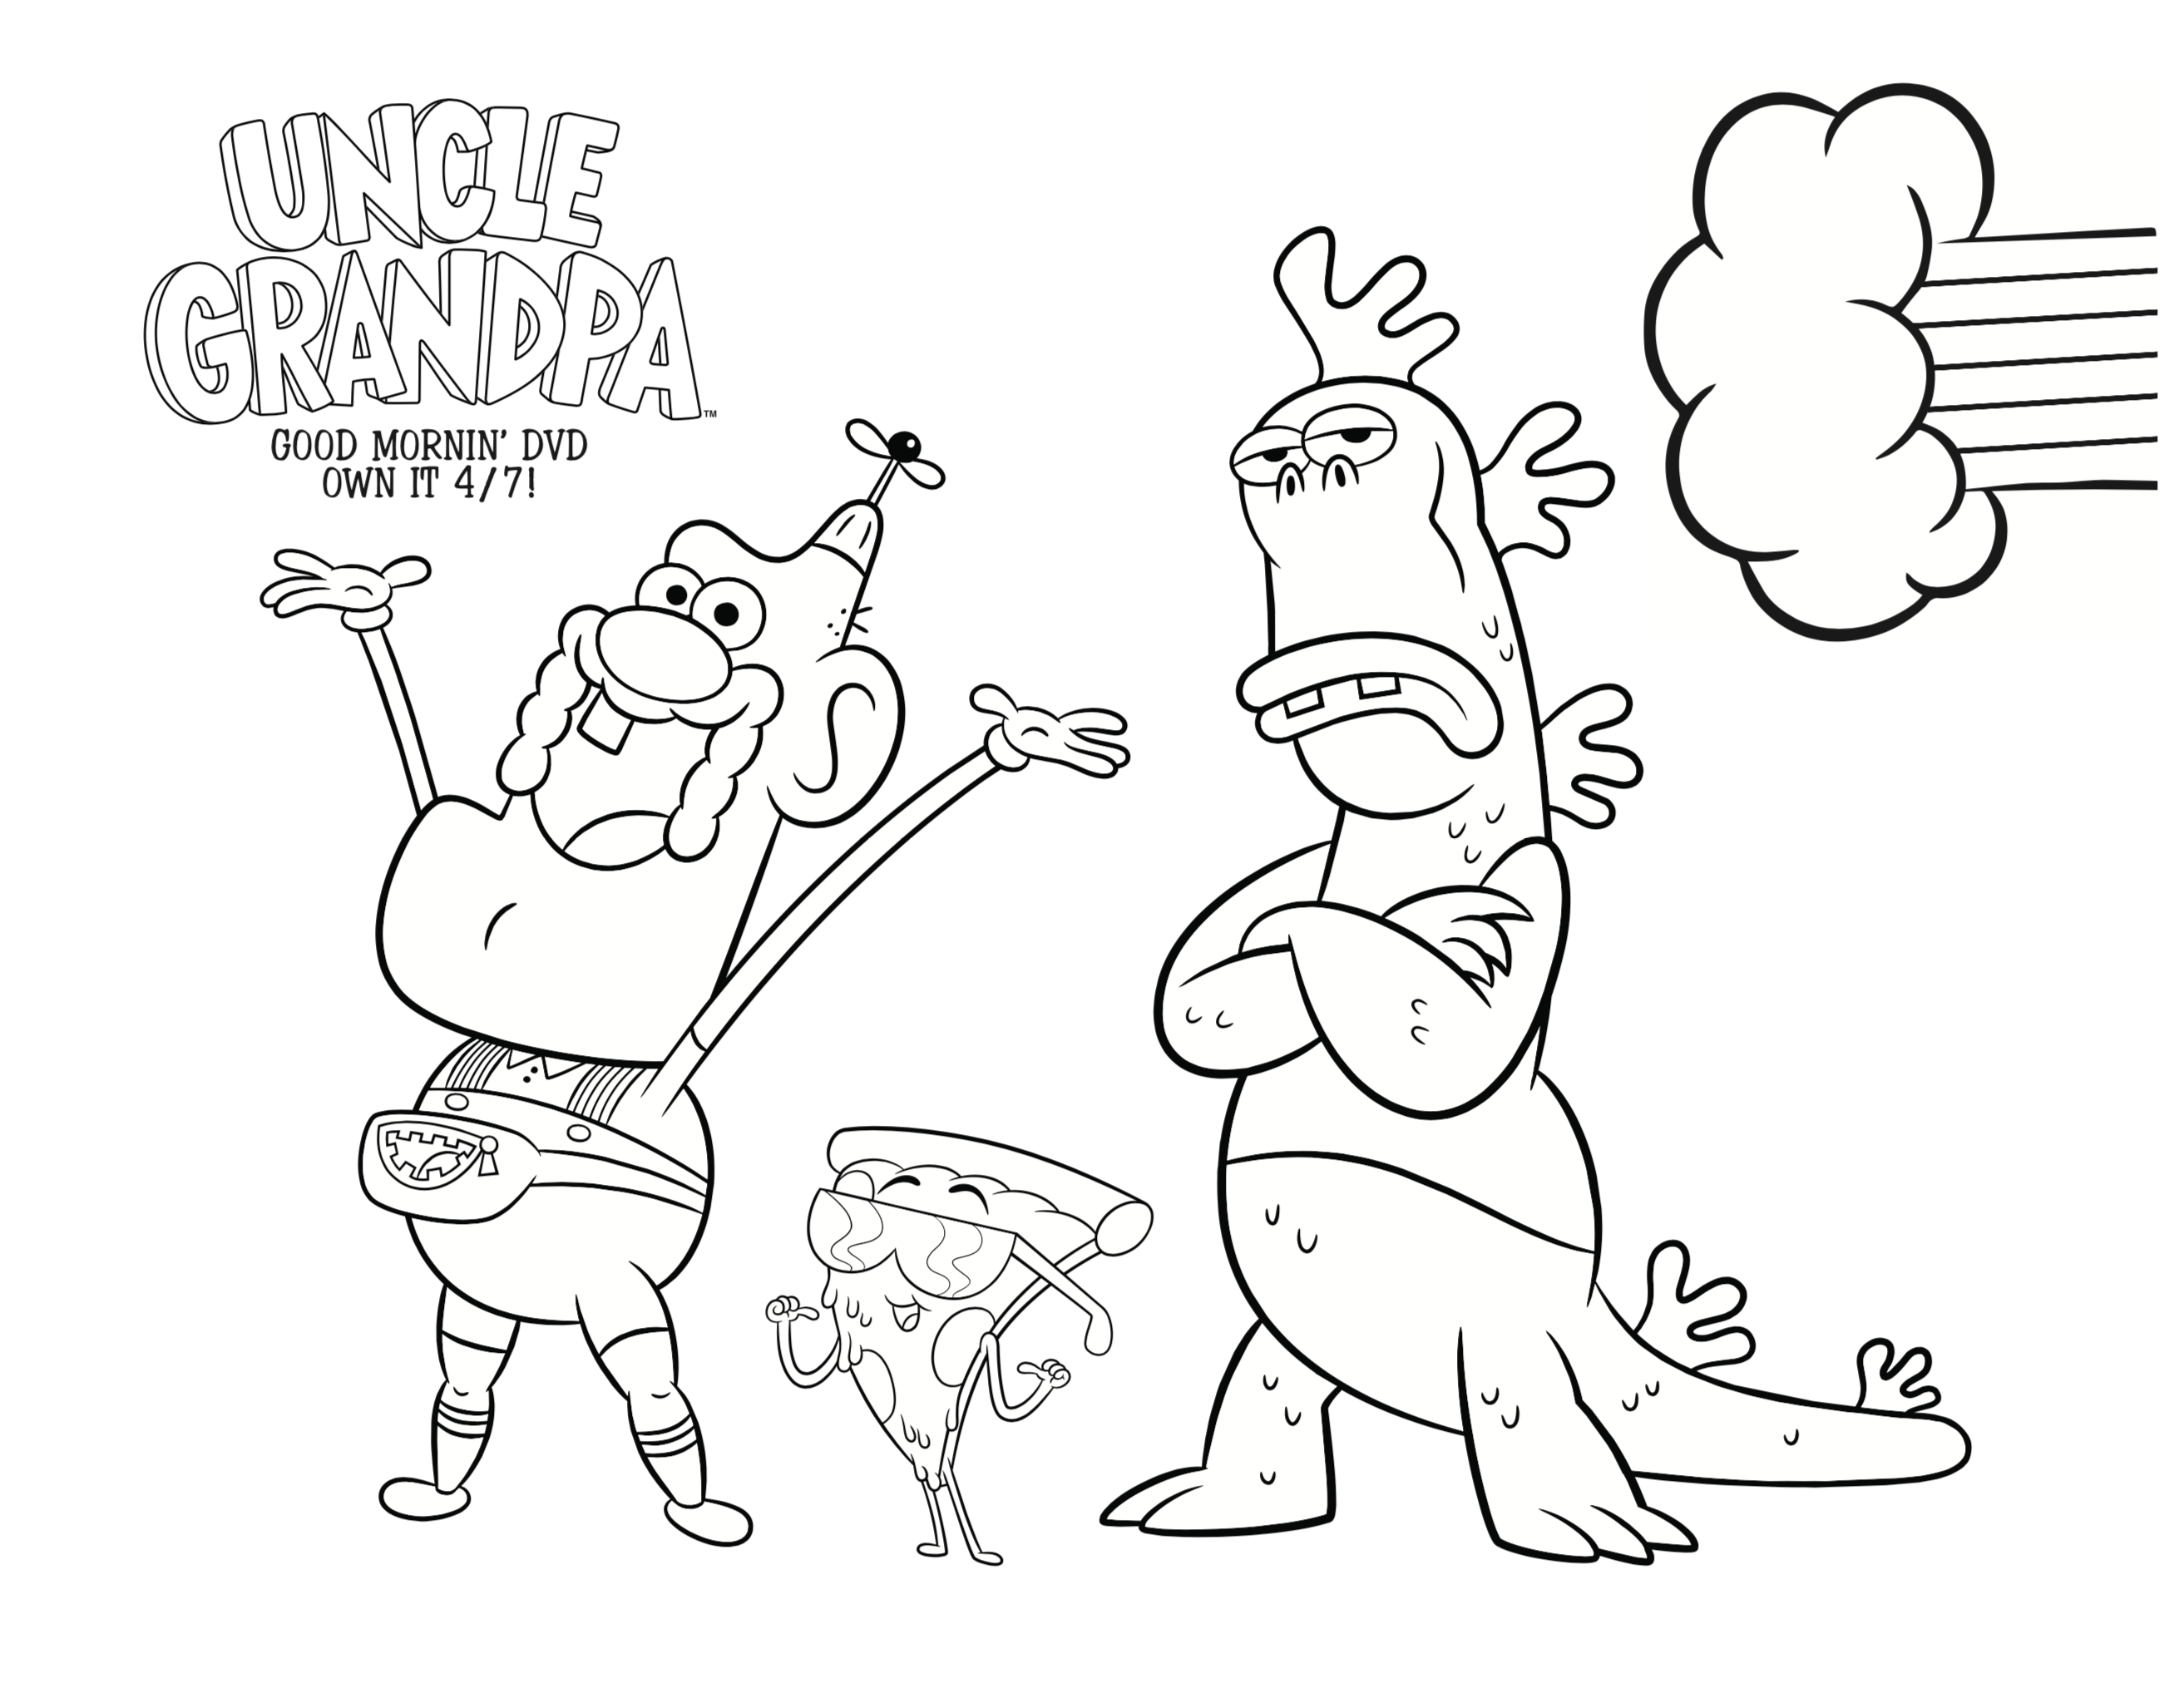 uncle-grandpa-coloring-page-0001-qx